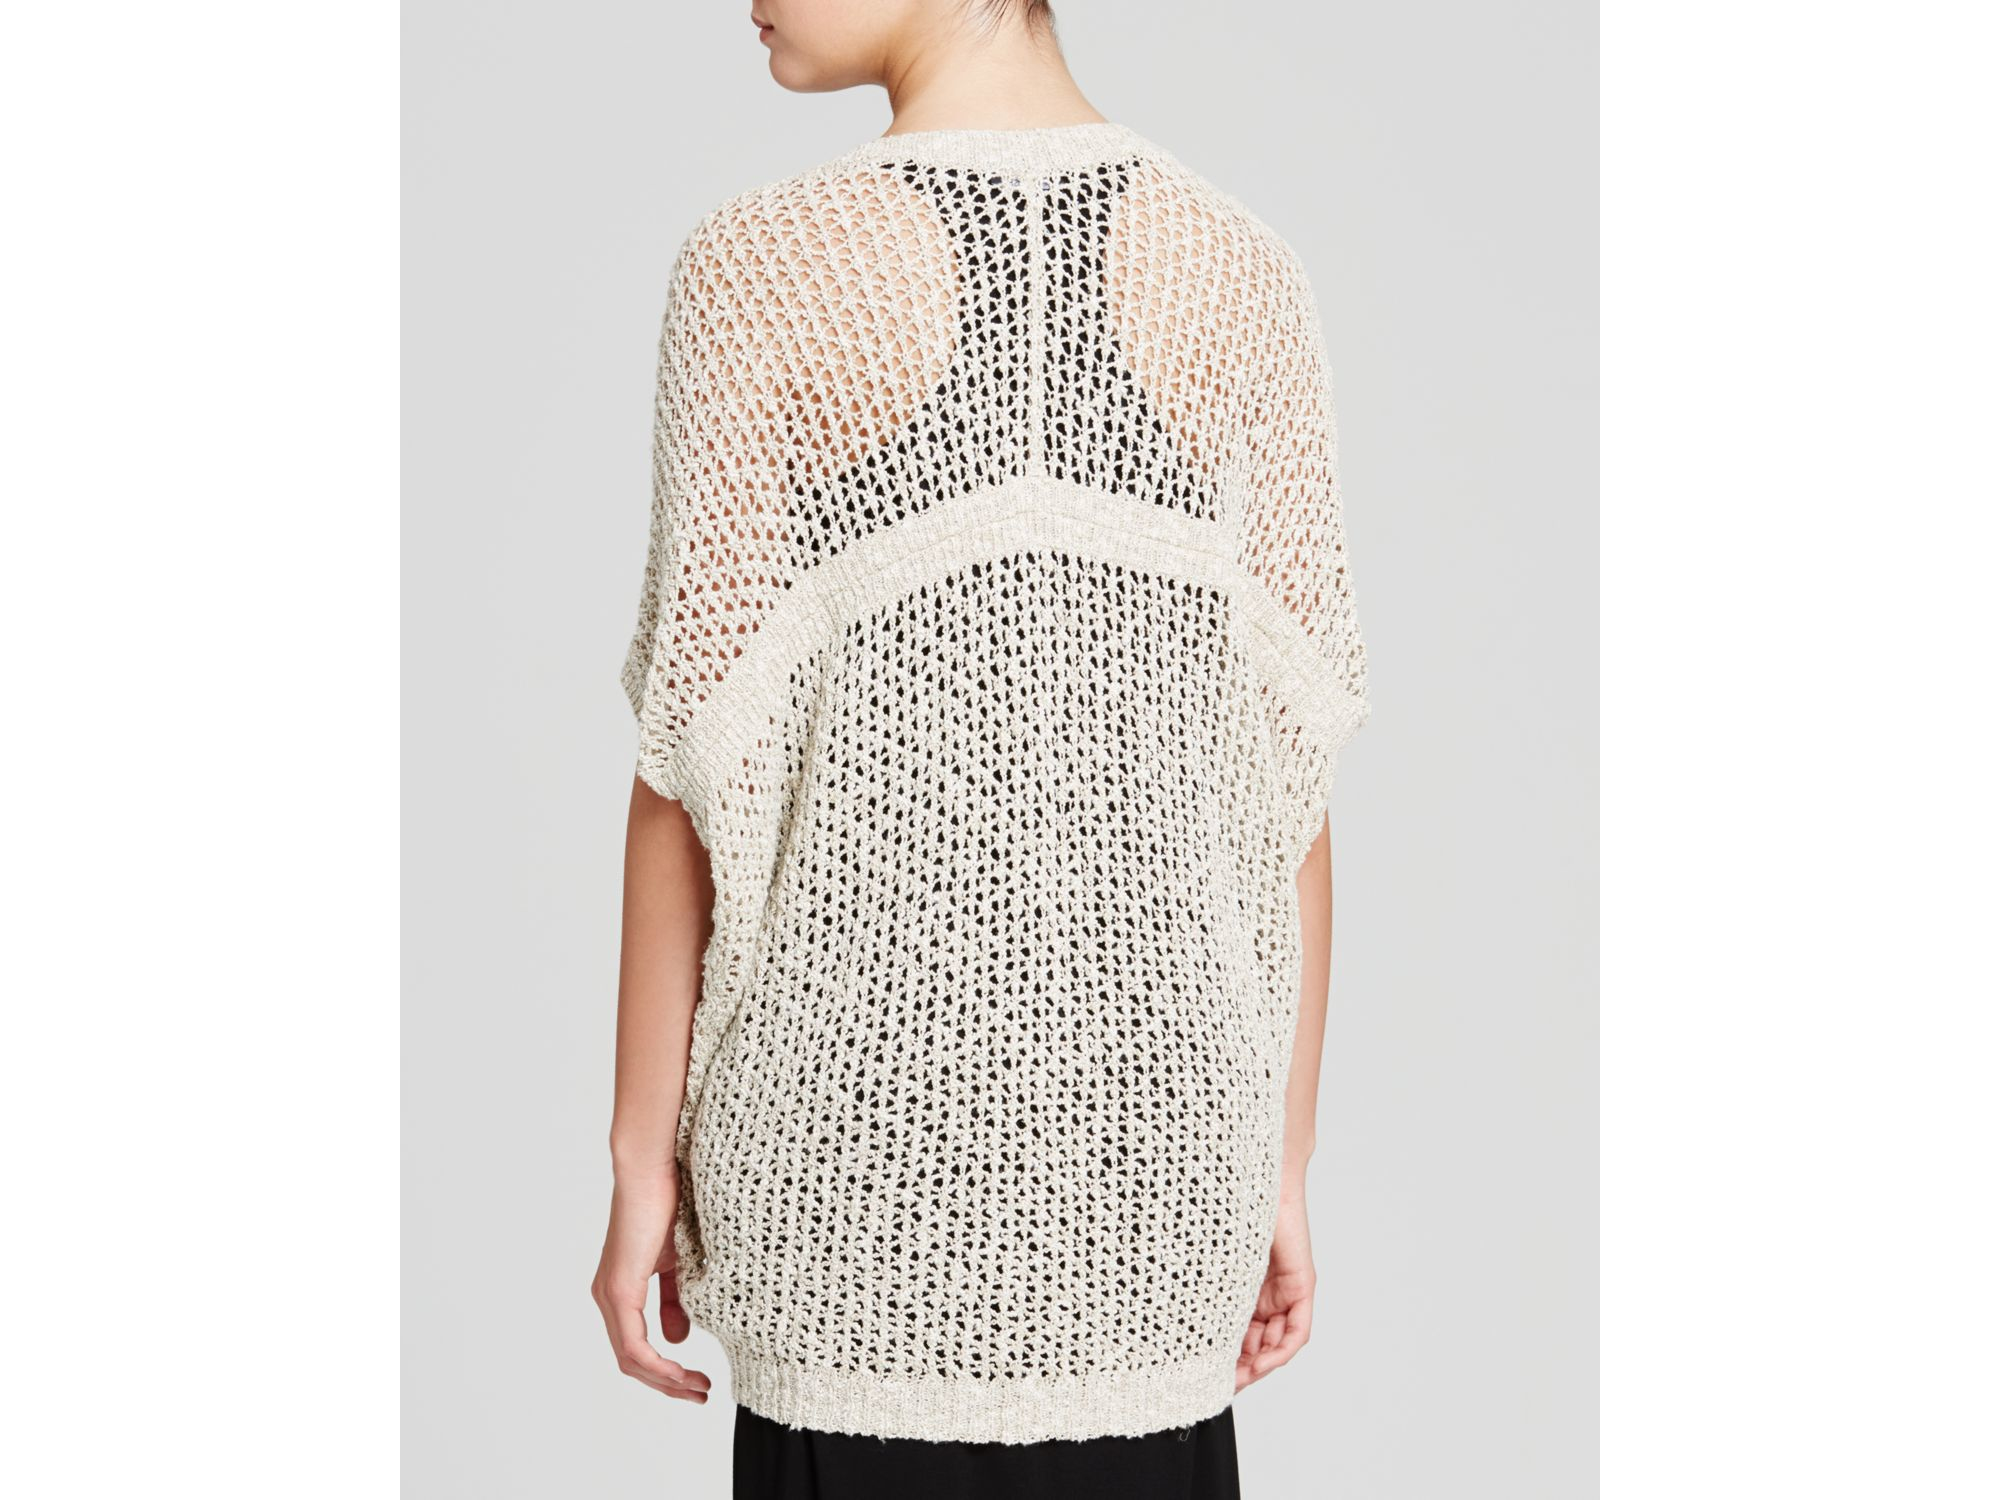 Eileen fisher Open Knit Kimono Cardigan in Natural | Lyst